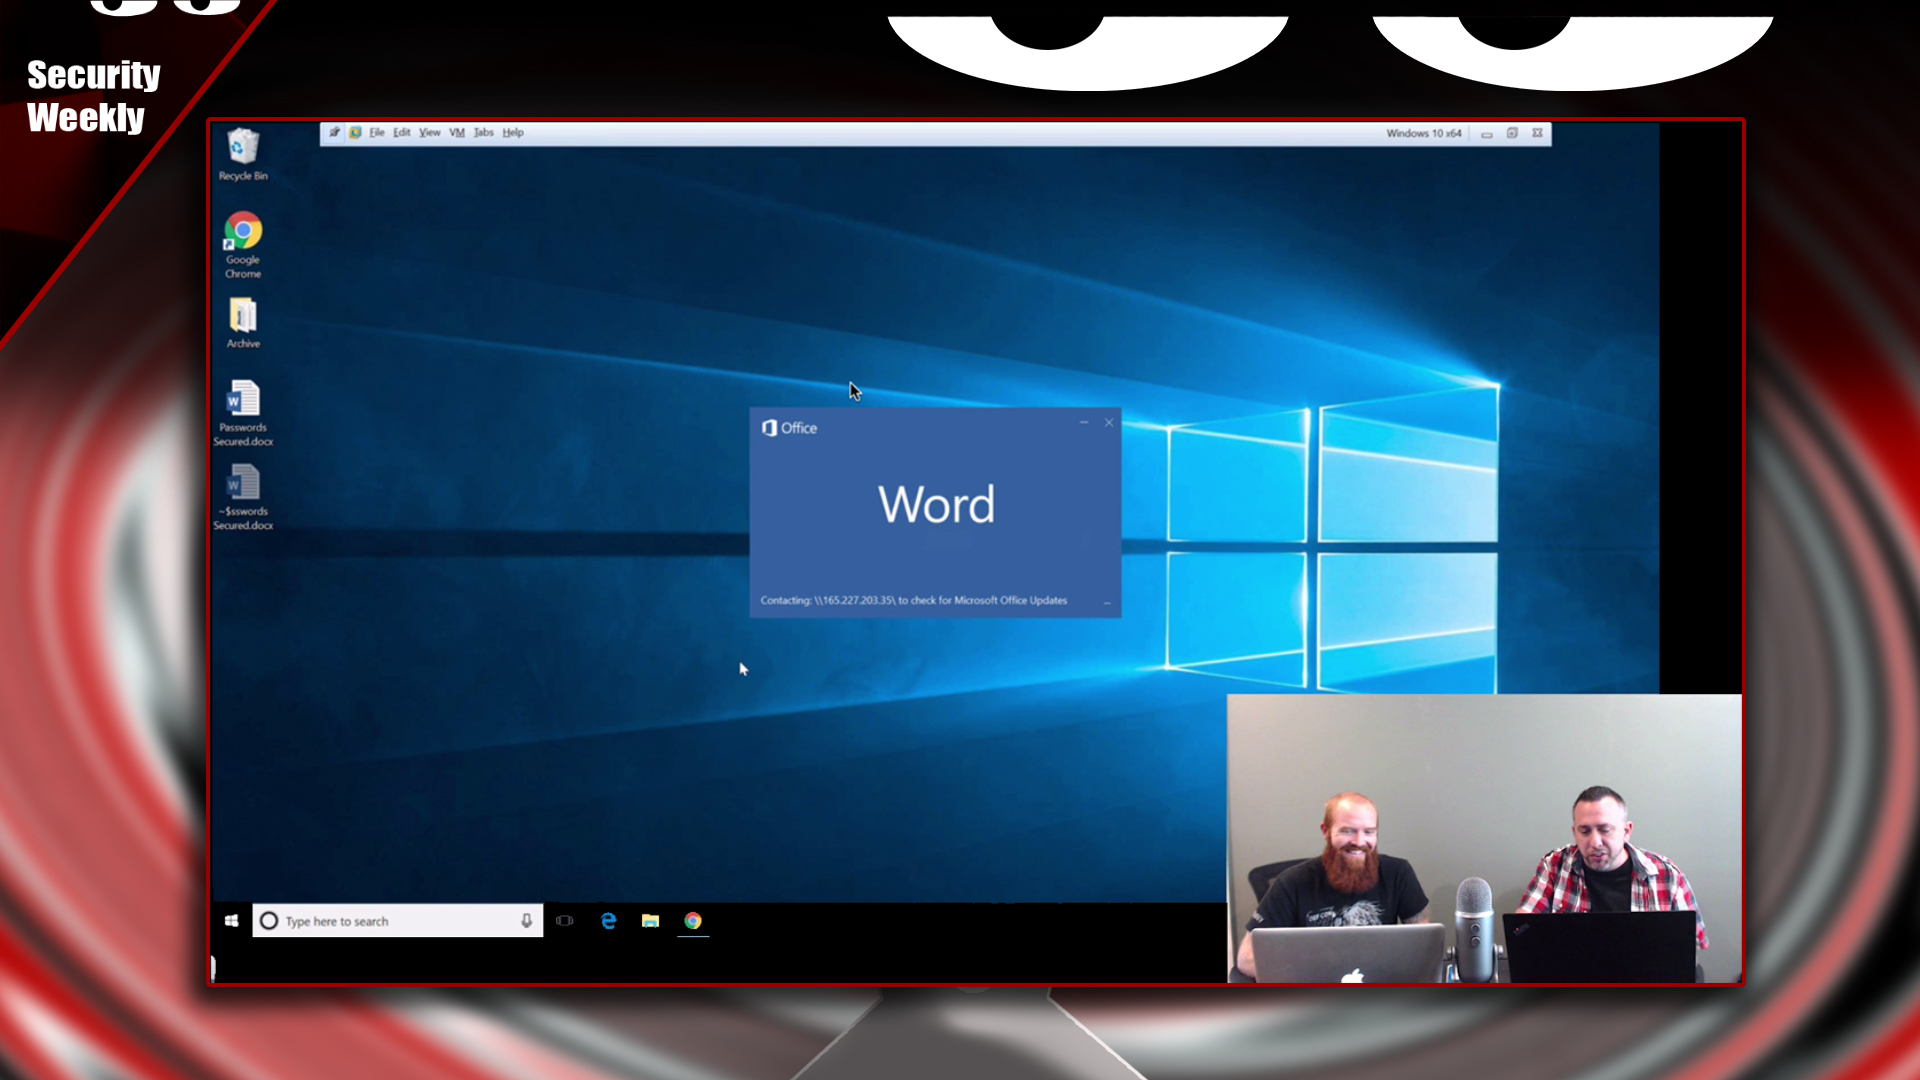 Artwork for Leaking Windows Creds Externally Via MS Office - Tradecraft Security Weekly #21